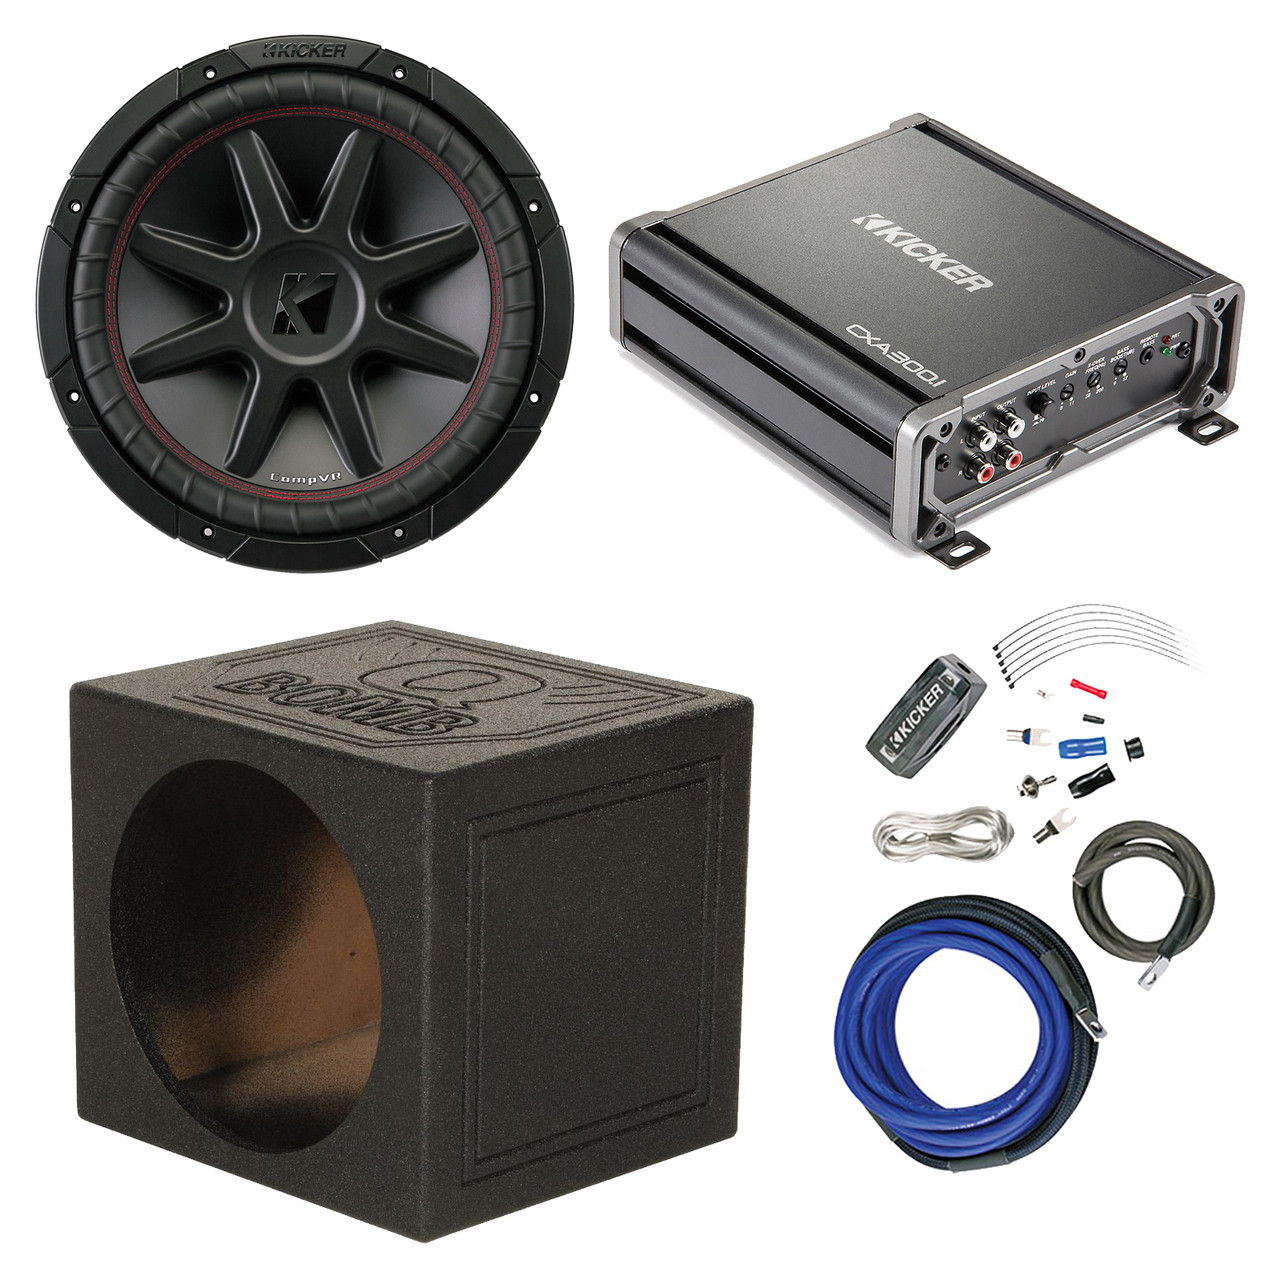 Pleasant Kicker 800W 12 2 Ohm Subwoofer 600 Watt Amplifier 12 Sub Box Wiring Cloud Pimpapsuggs Outletorg